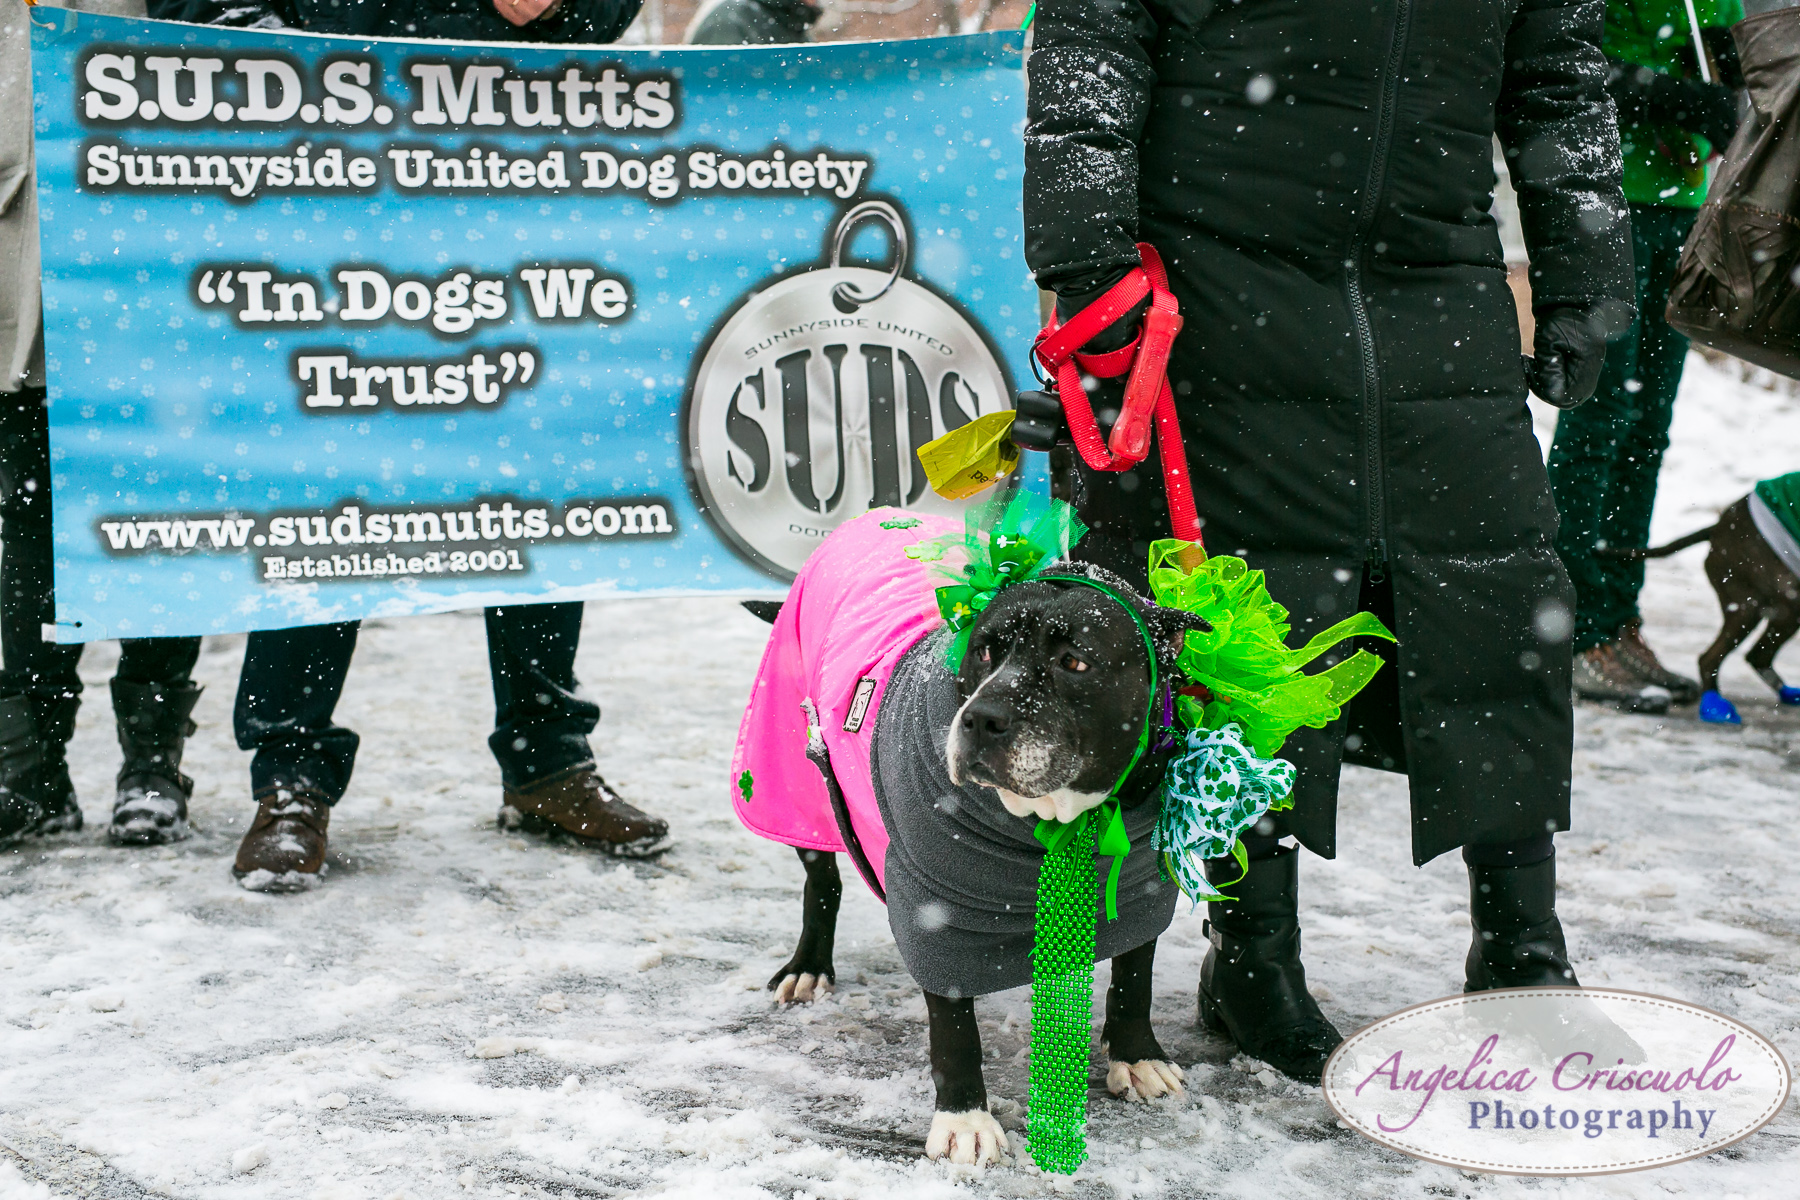 St.Patricks Day Parade Pitbull Mix Rescue Sean Casey Wes Paw Charlotte LIC Queens SUDS